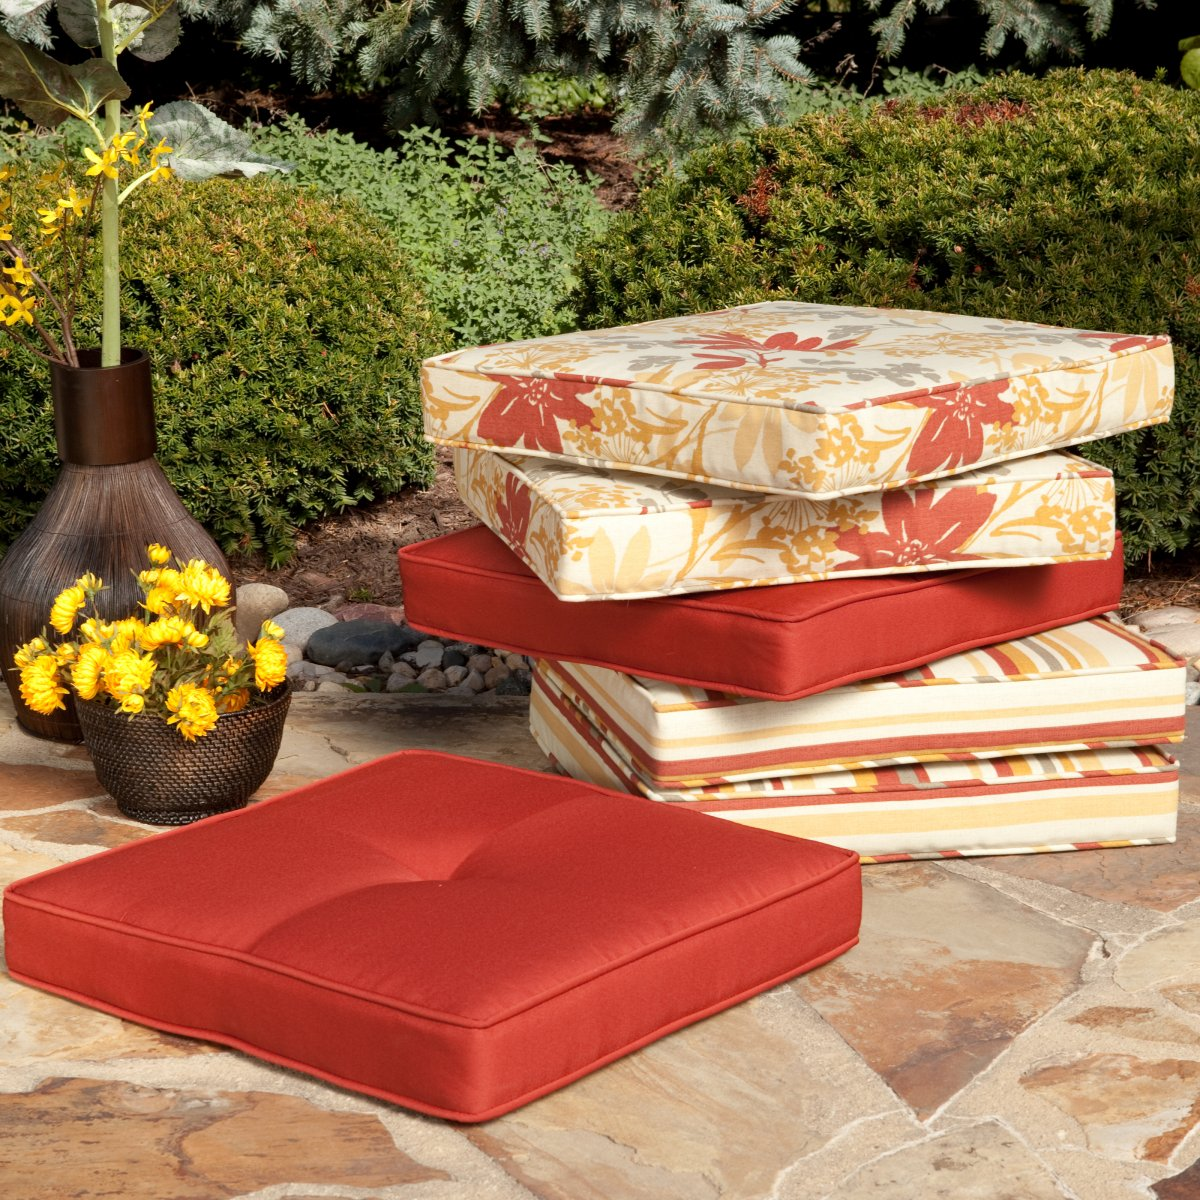 colorful tropical target outdoor cushions idea in red and cream color with pattern on concrete patio with shrub